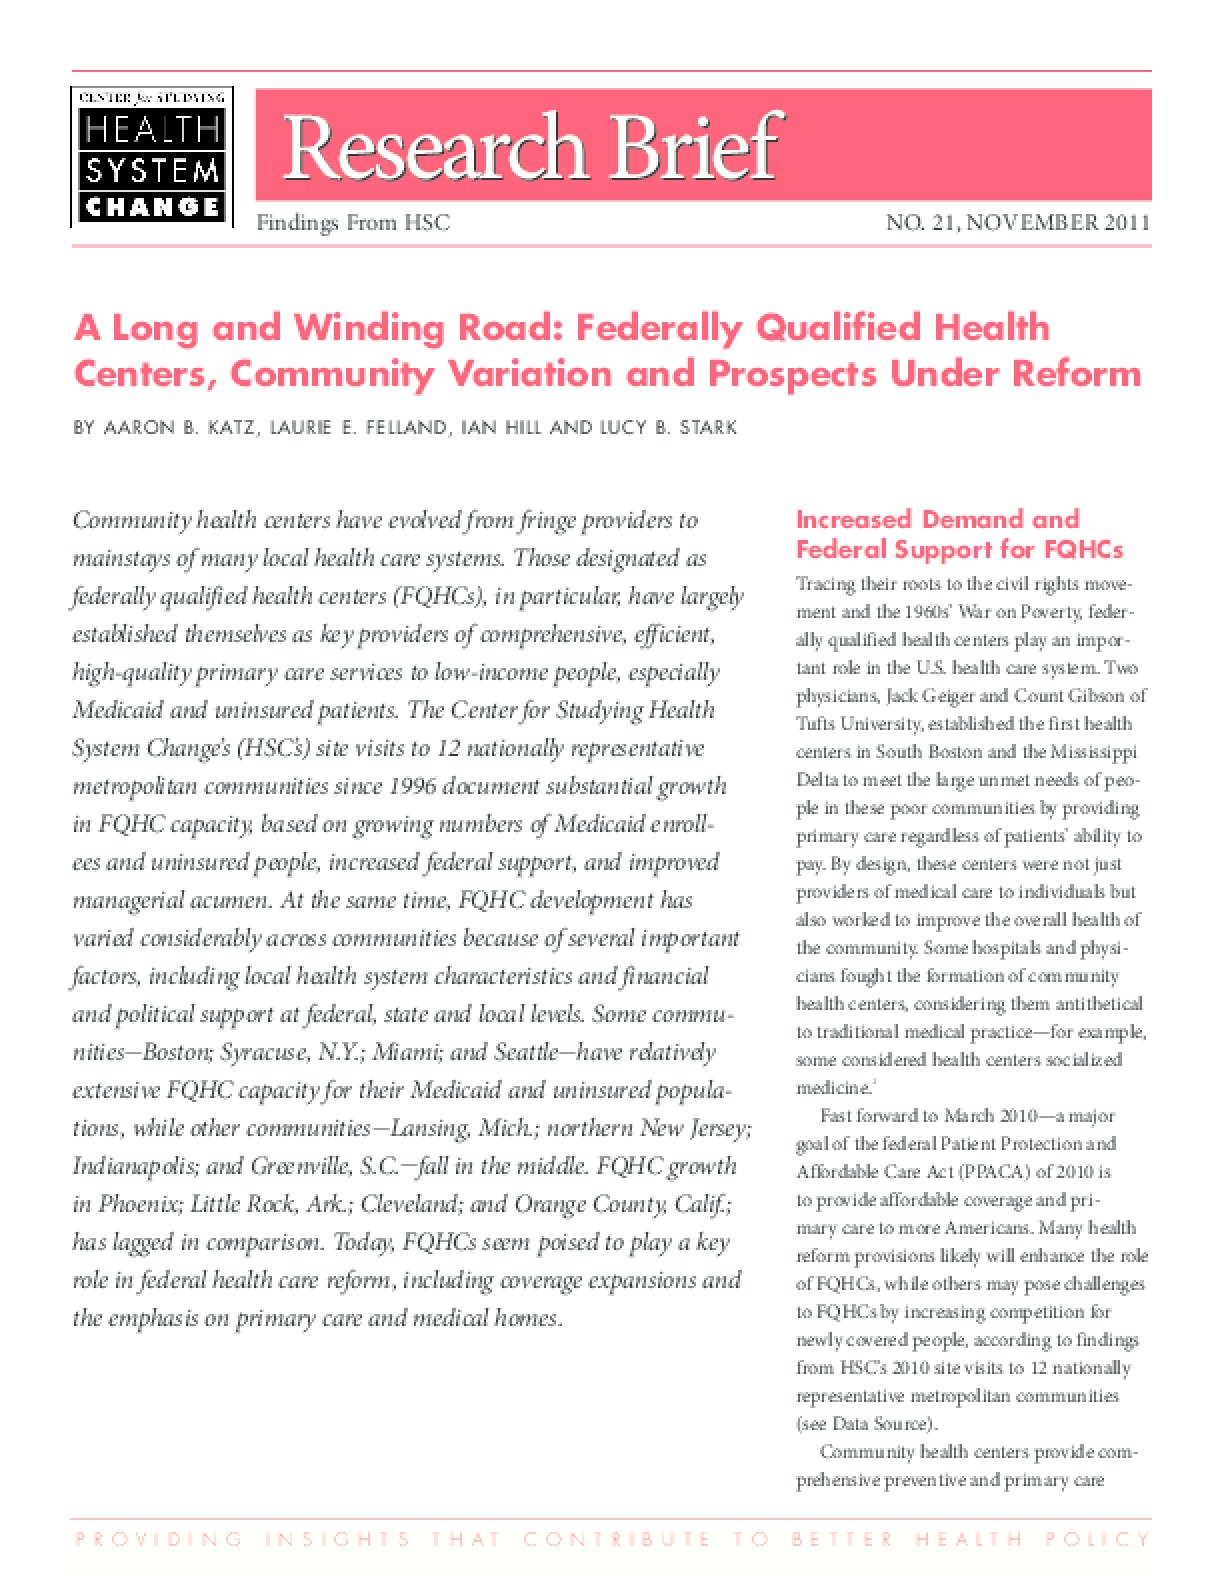 A Long and Winding Road: Federally Qualified Health Centers, Community Variation and Prospects Under Reform